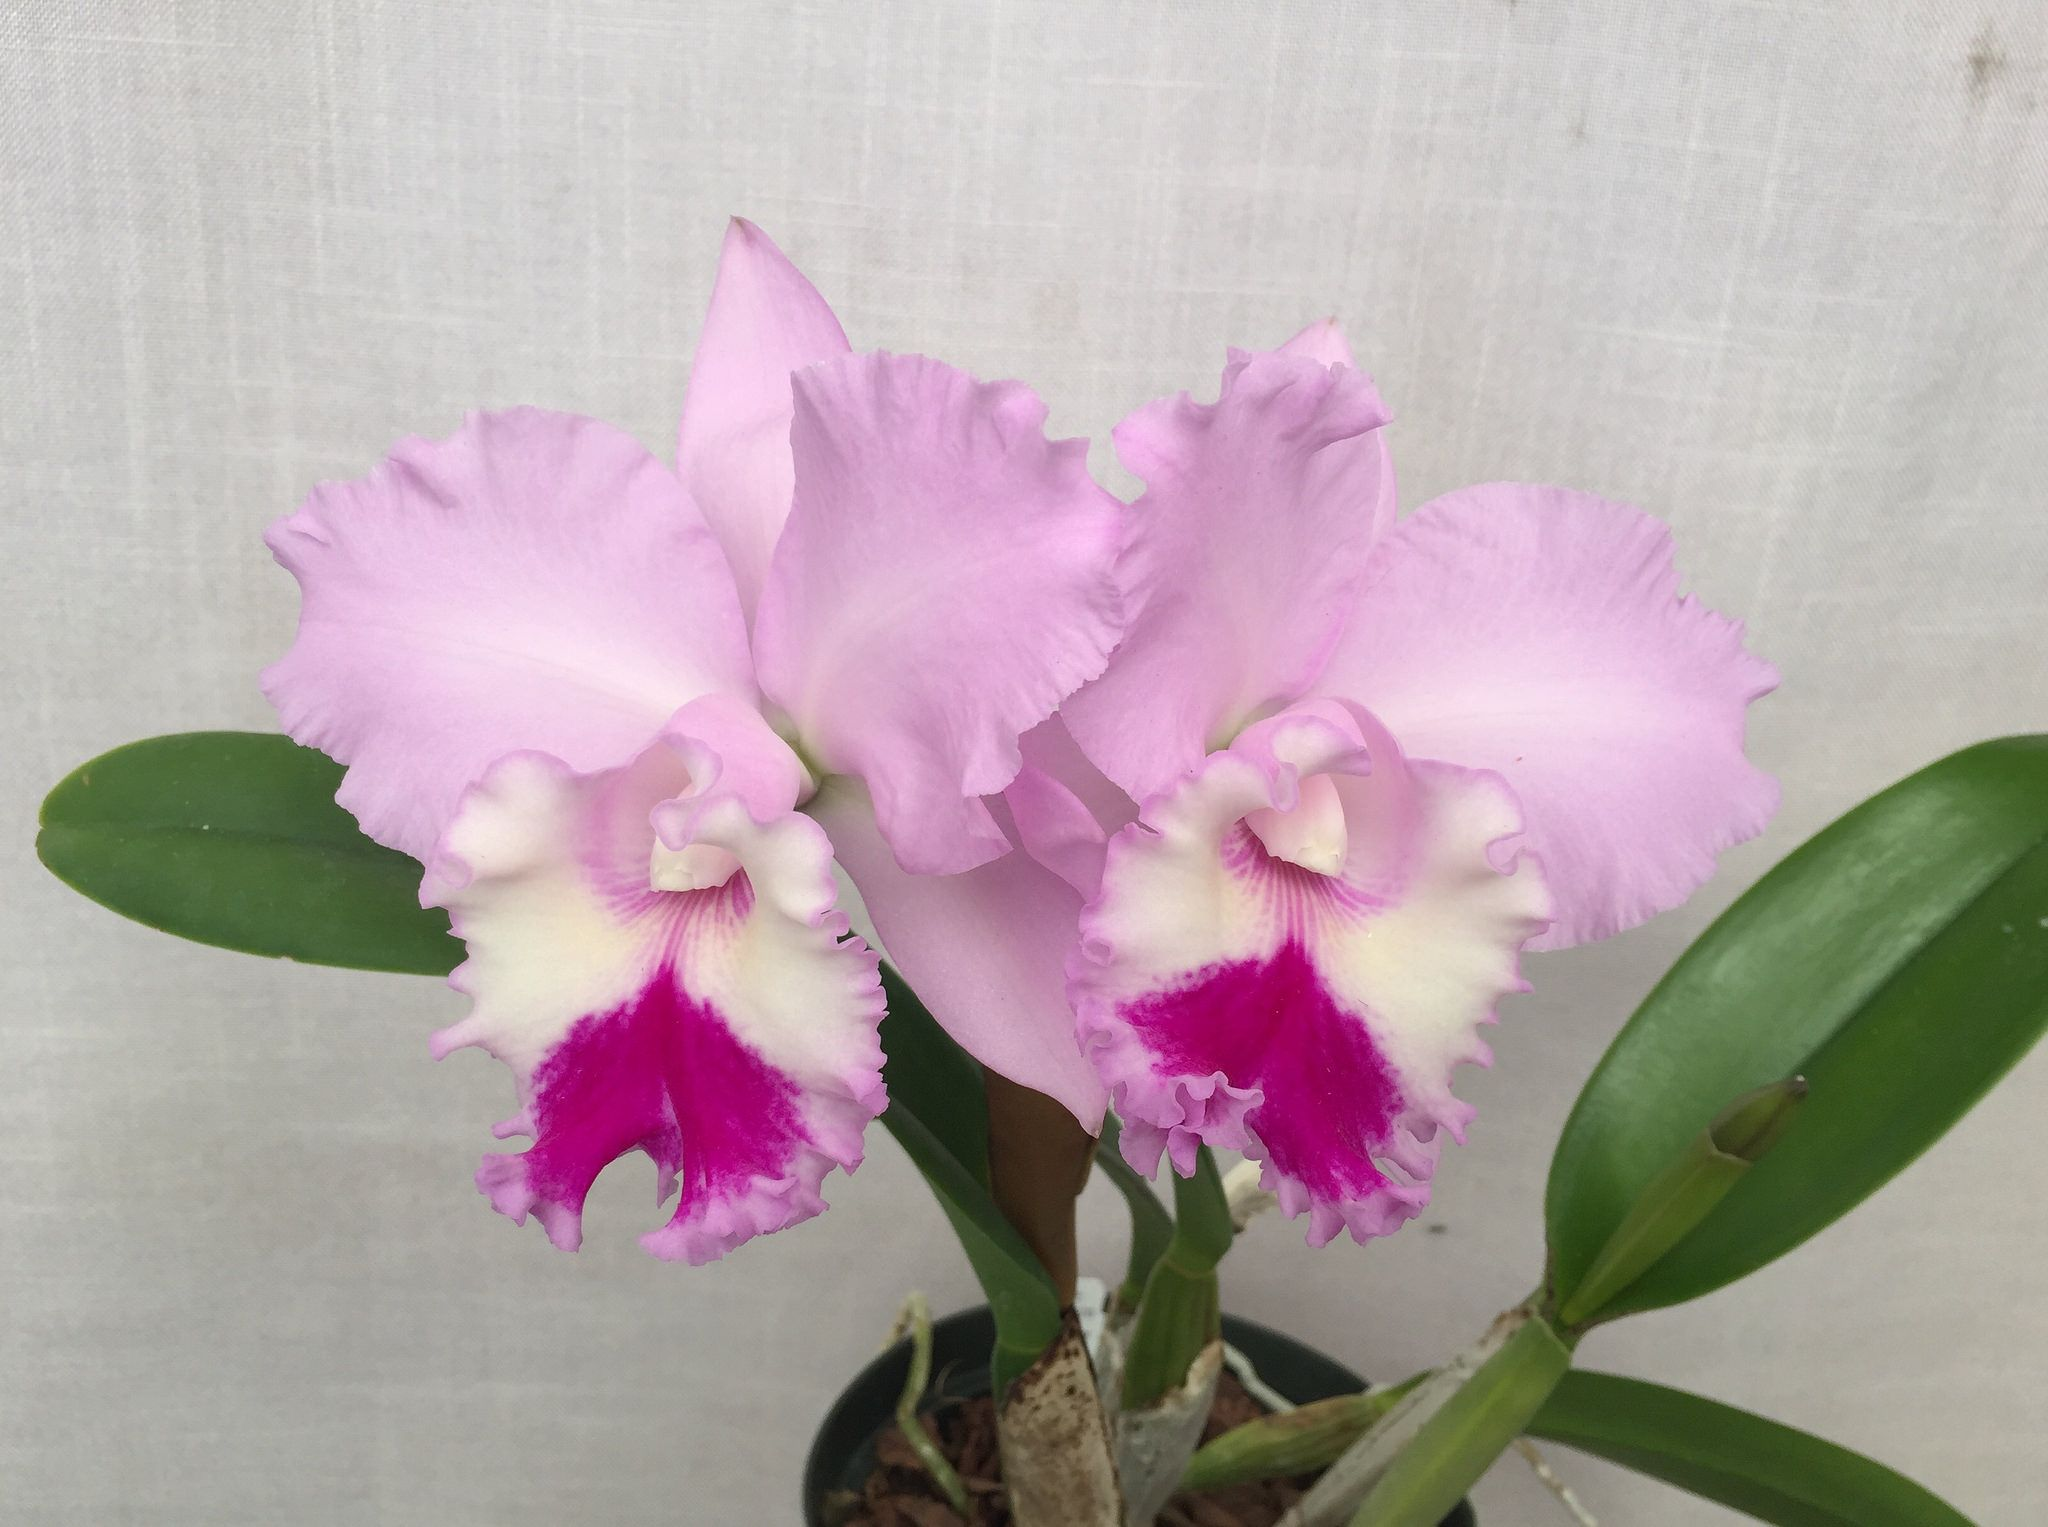 Rhyncholaeliocattleya Chief Pink Diana Chief Snow X November Bride Z 21070 Rhyncholaeliocattleya Cattleya Pink Fragrant Orchid Orchidsbyhausermann Orchid Flower Beautiful Orchids Orchids